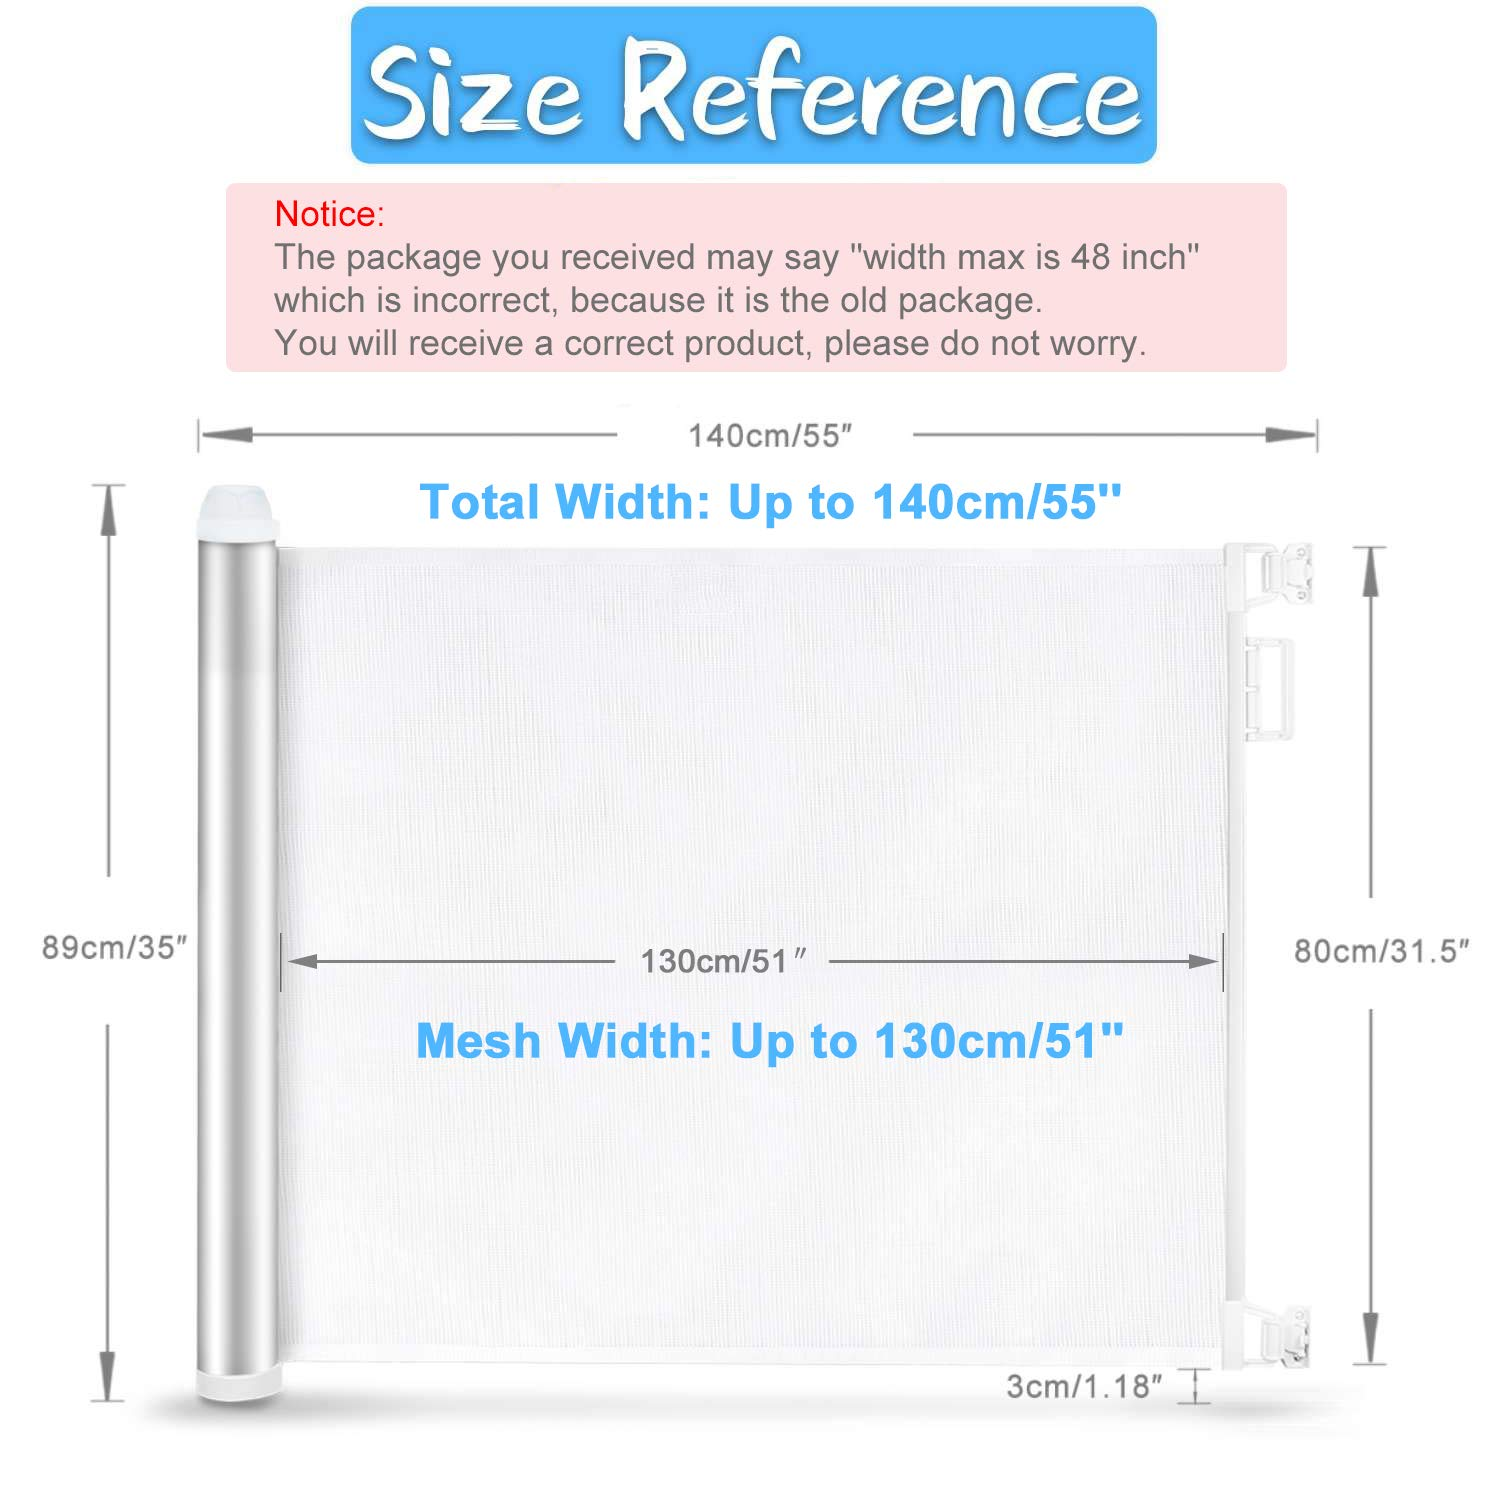 Baby Retractable Mesh Gates, Extra Wide Safety Gate/Pet Dog Gate Replacement for Stairs/Door/Stairway - Flexible Extension Waterproof Rustproof Aluminum White Protect Toddlers (Silver White) by PRObebi (Image #5)